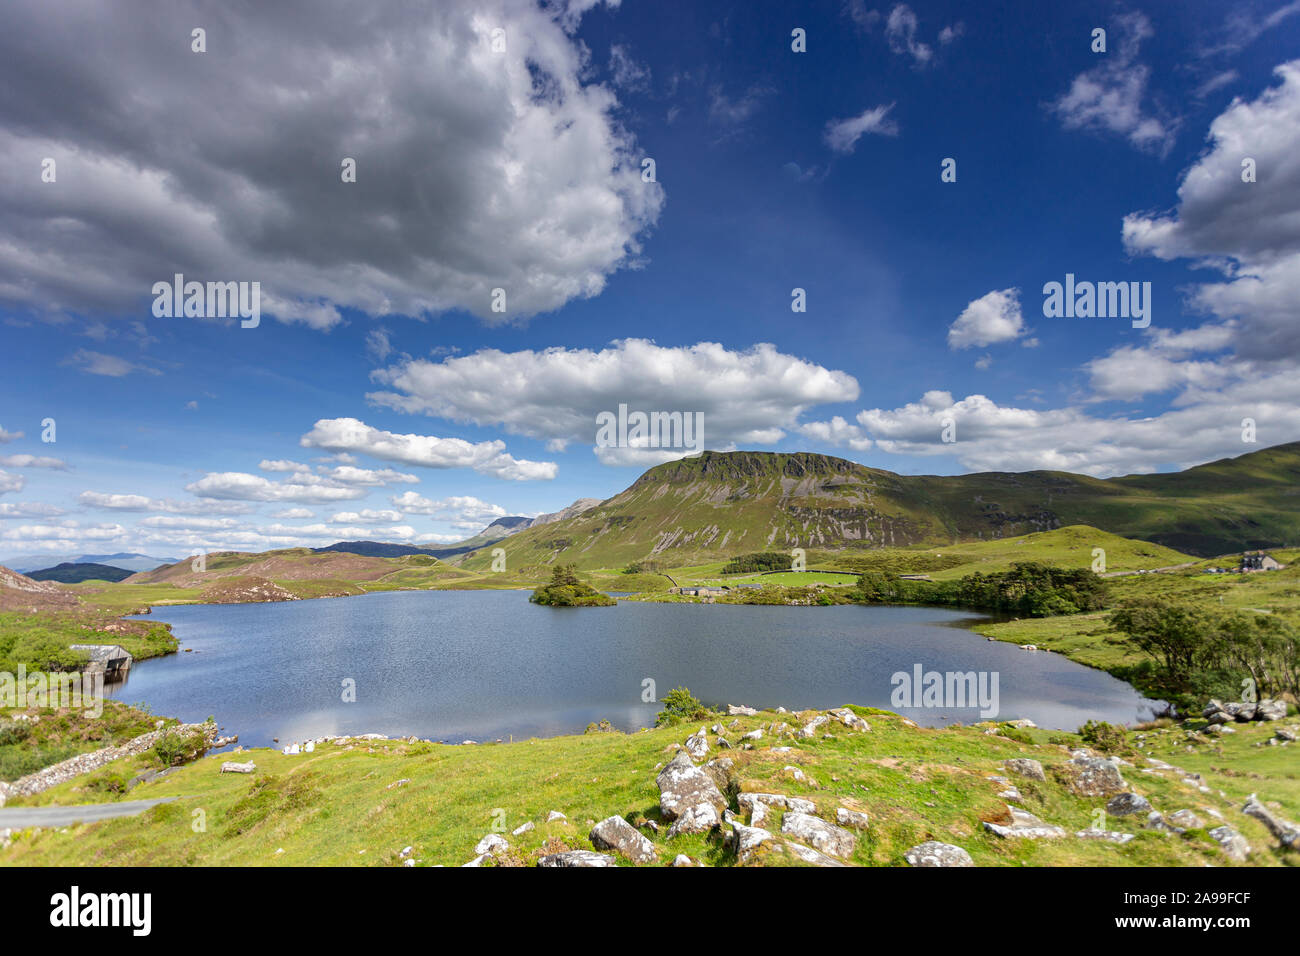 Cregennan Lakes on a sunny day in the Snowdonia National Park, Wales Stock Photo